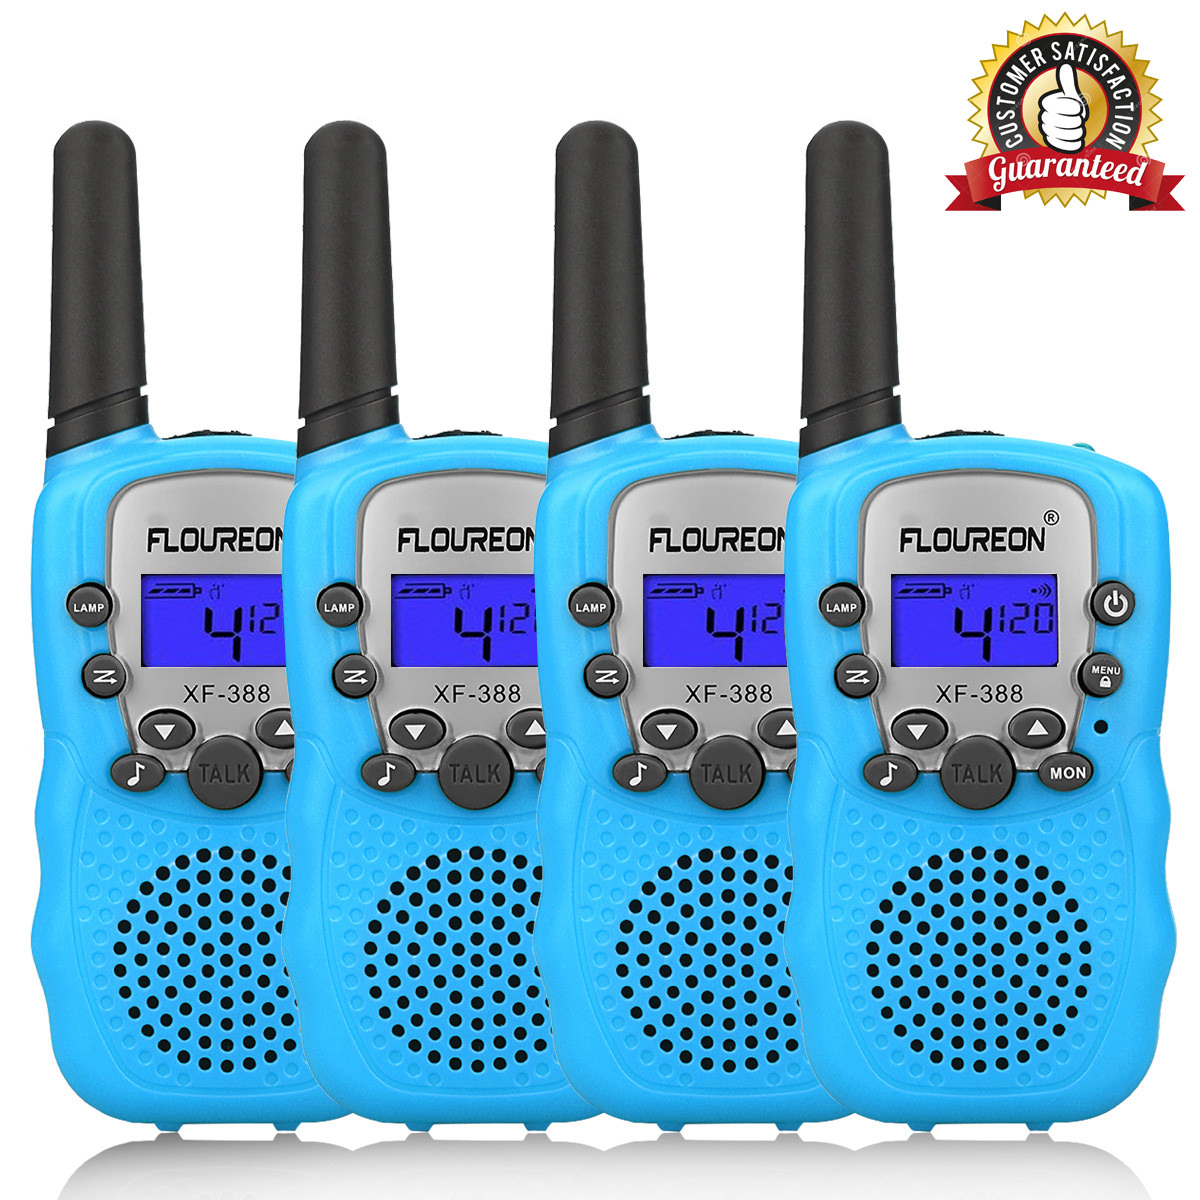 Walkie Talkies for Kids, FLOUREON 22 Channel Two-Way Radio Best for Kids Long Range 3000M Handheld Outdoor Interphone/Portable Toy Radio Transceiver(4 Packs)